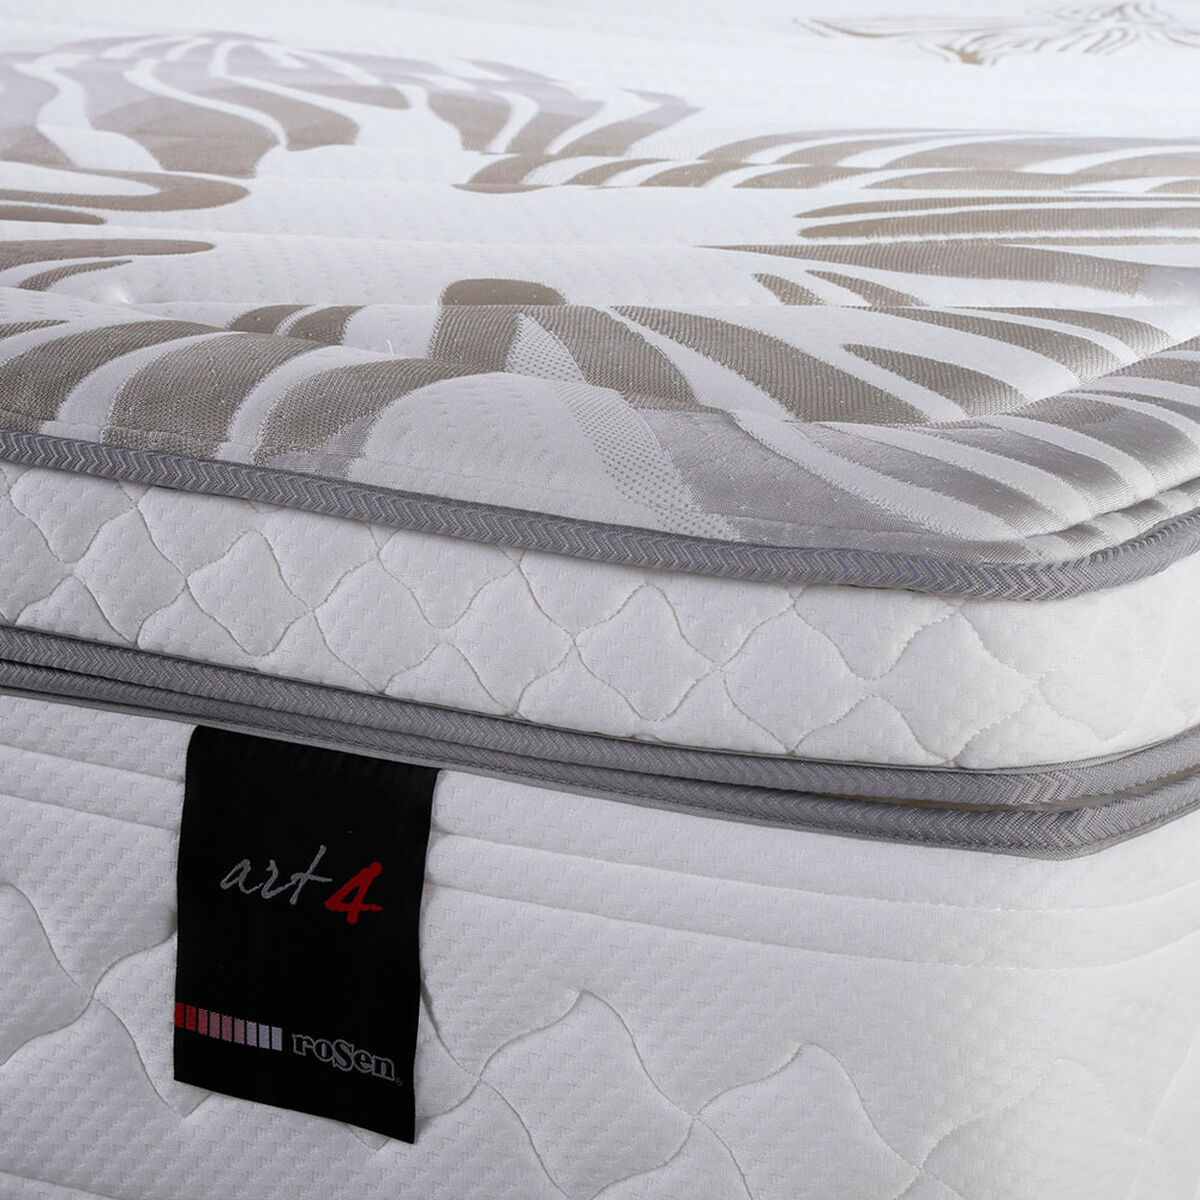 Cama Europea Super King Div Art 4